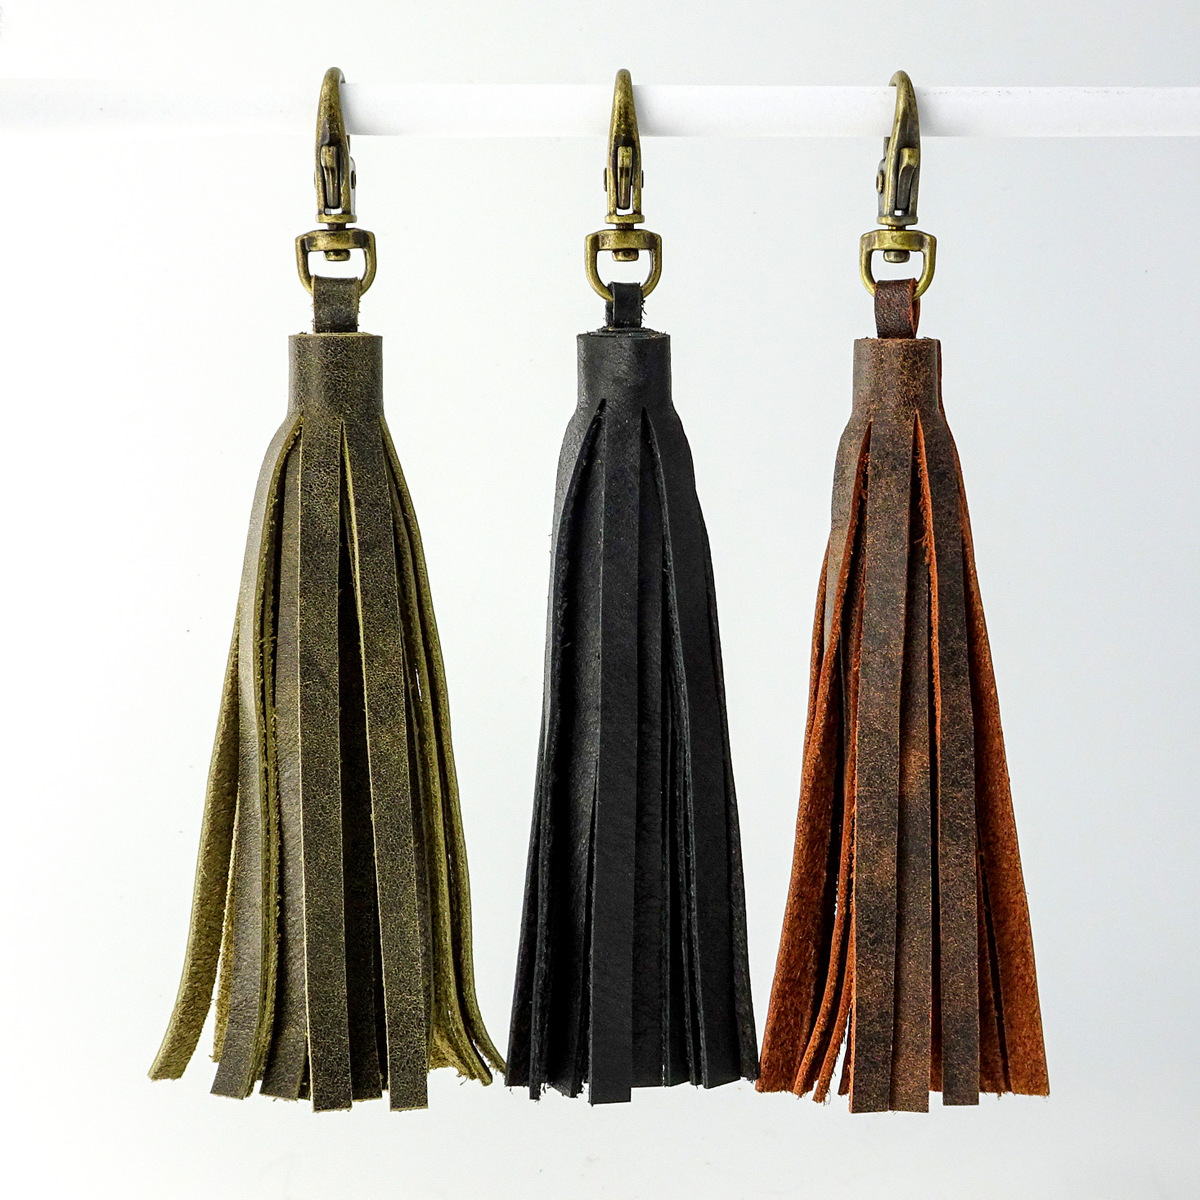 2-Handcrafted Leather Tassels, Nancy LaPlace, LaPlace Leather-002.jpg